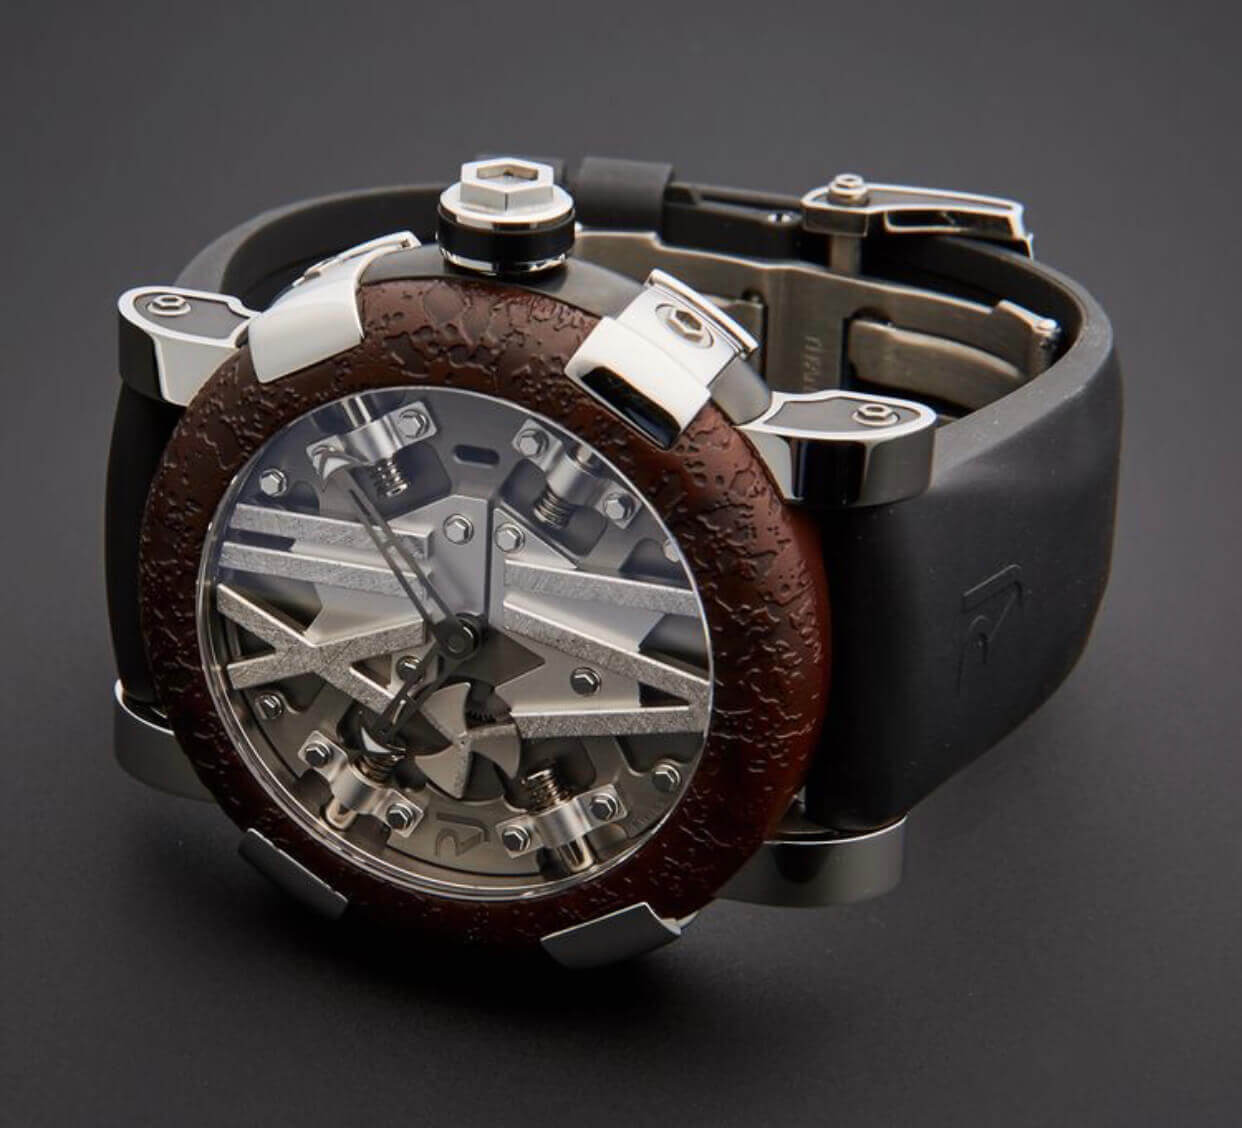 ttitanik dna romain jerome